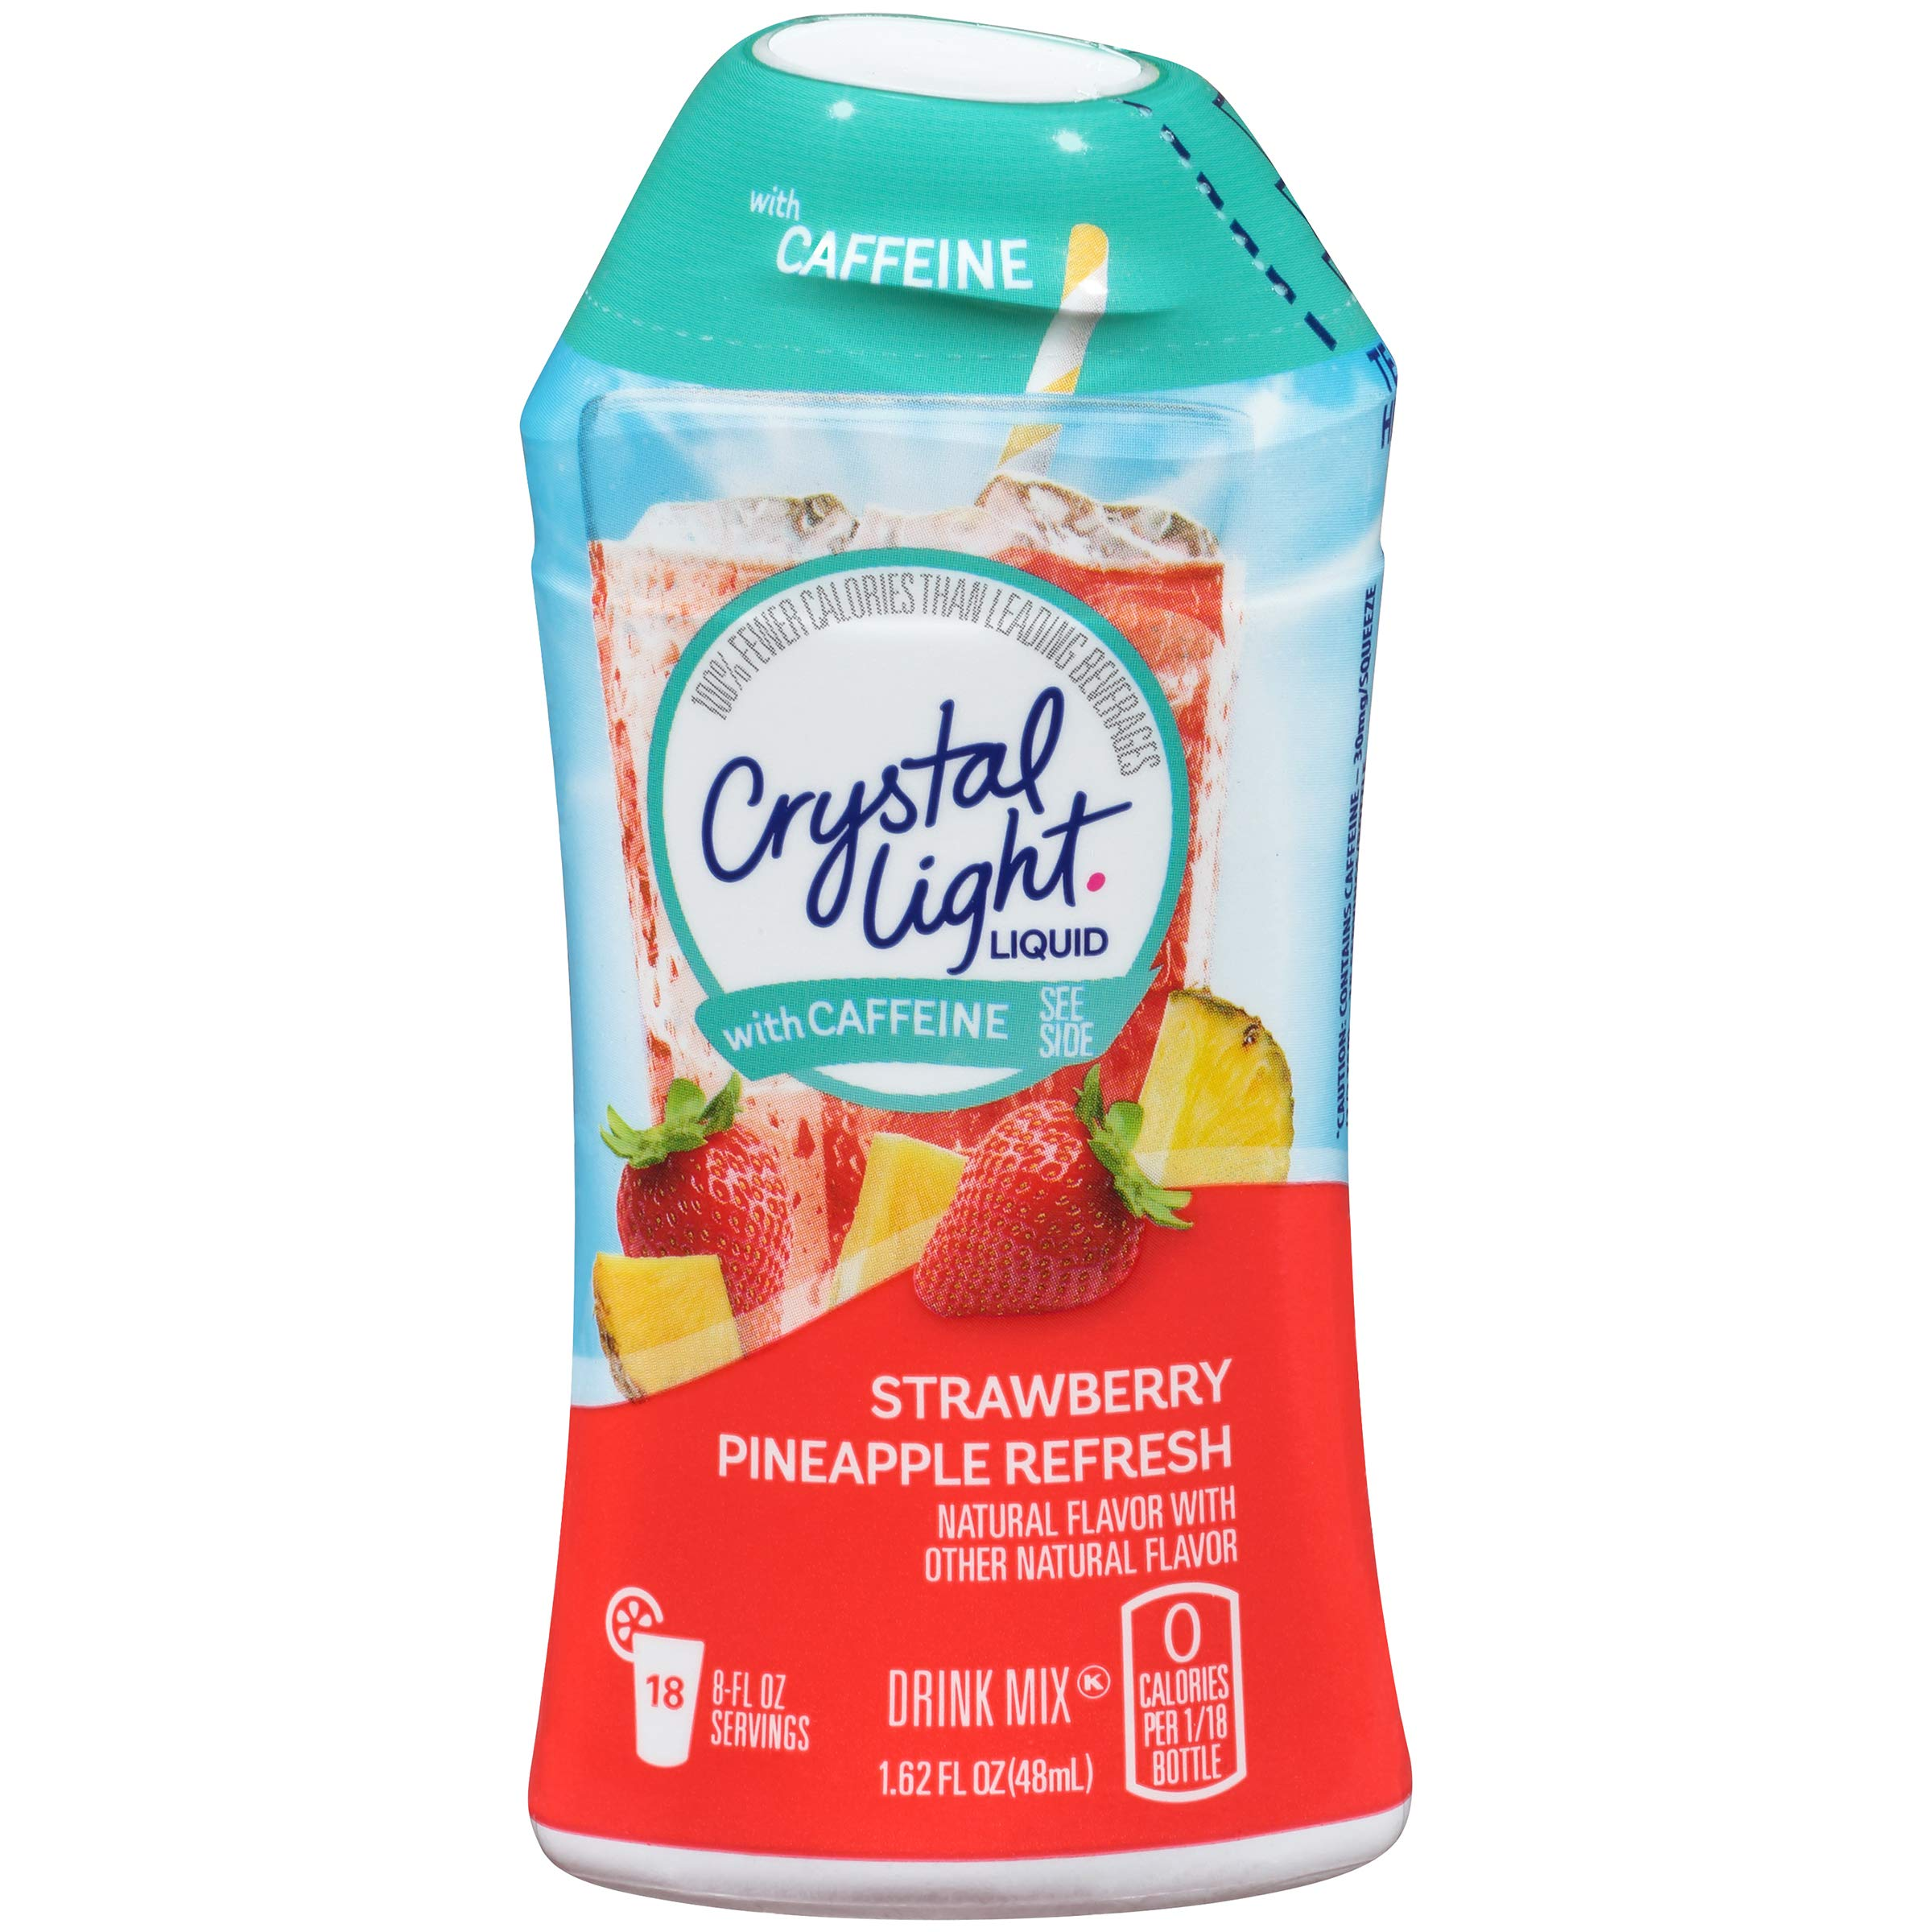 Crystal Light Liquid with Caffeine, Strawberry Pineapple Refresh, 1.62 Ounce